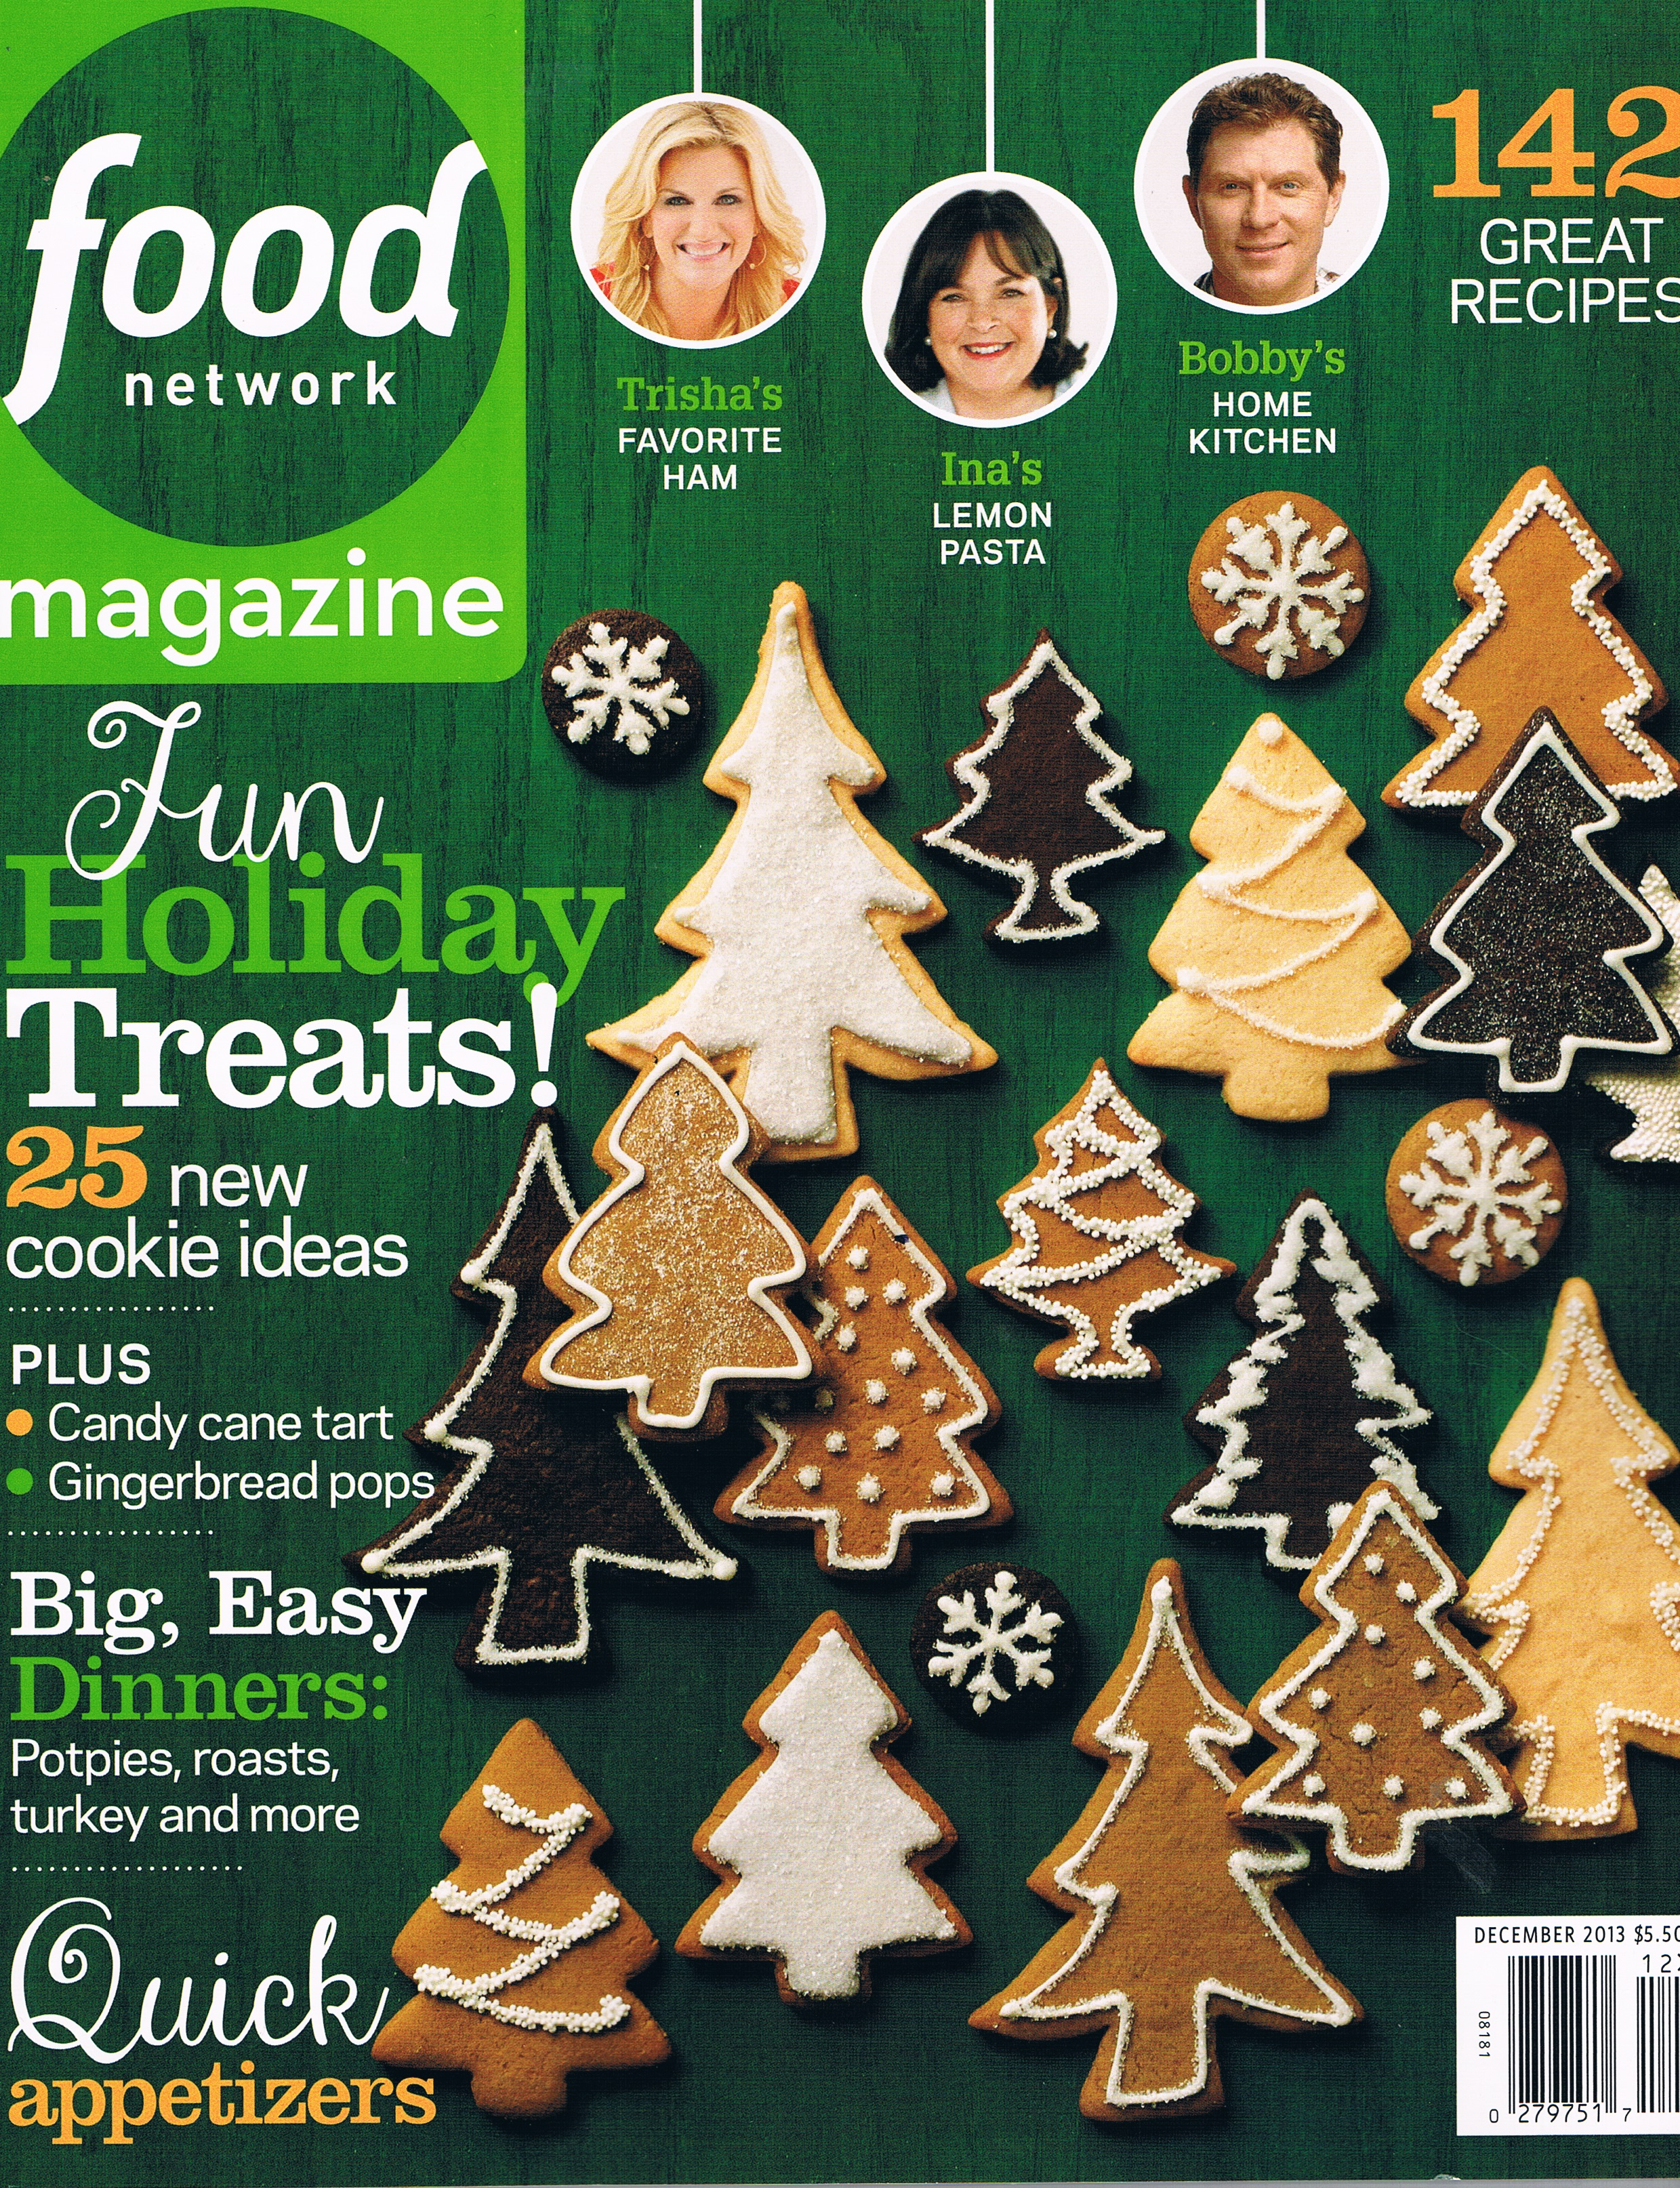 Food Network Magazine- December 2013